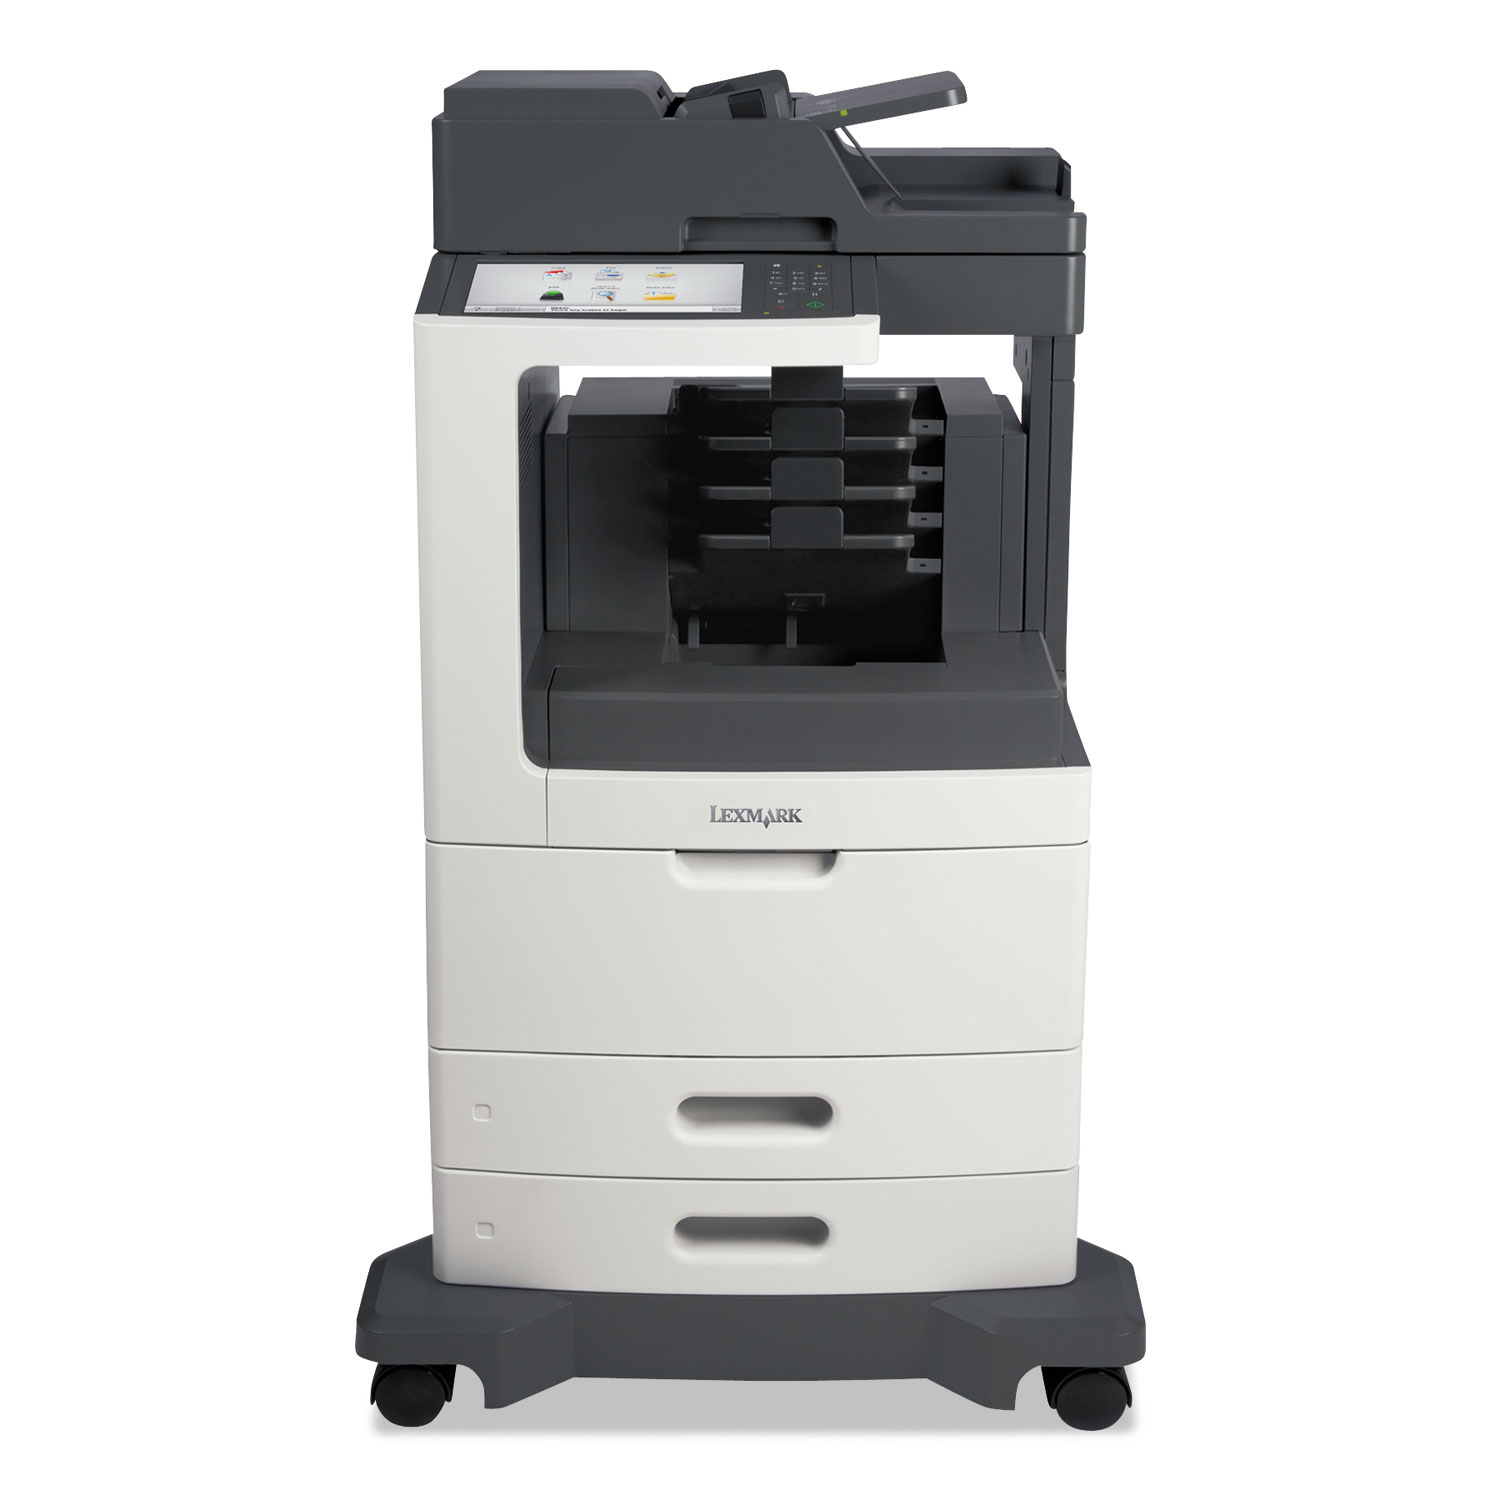 MX810dme Multifunction Laser Printer, Copy/Fax/Print/Scan